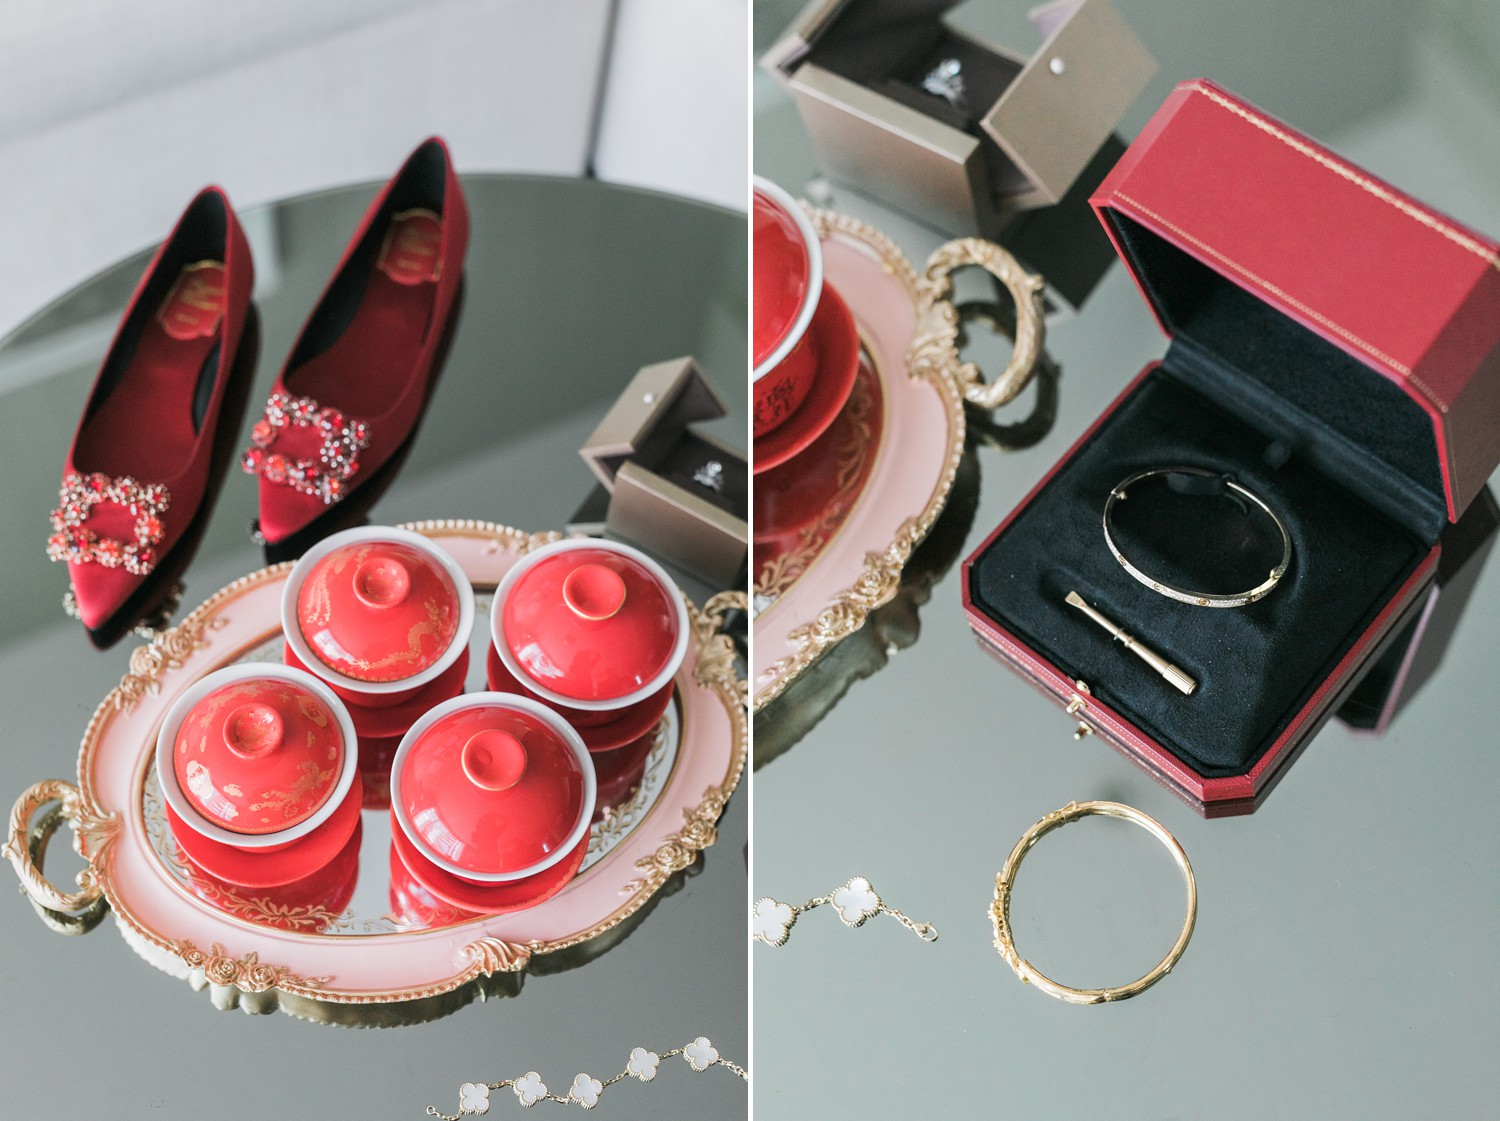 Roger Vivier Red Flats, Cartier Bracelet, Van Cleef Bracelet, Tea Ceremony at Luxury Yorkville Vinci Toronto Four Season Wedding Photos with Chinese Bride and Groom